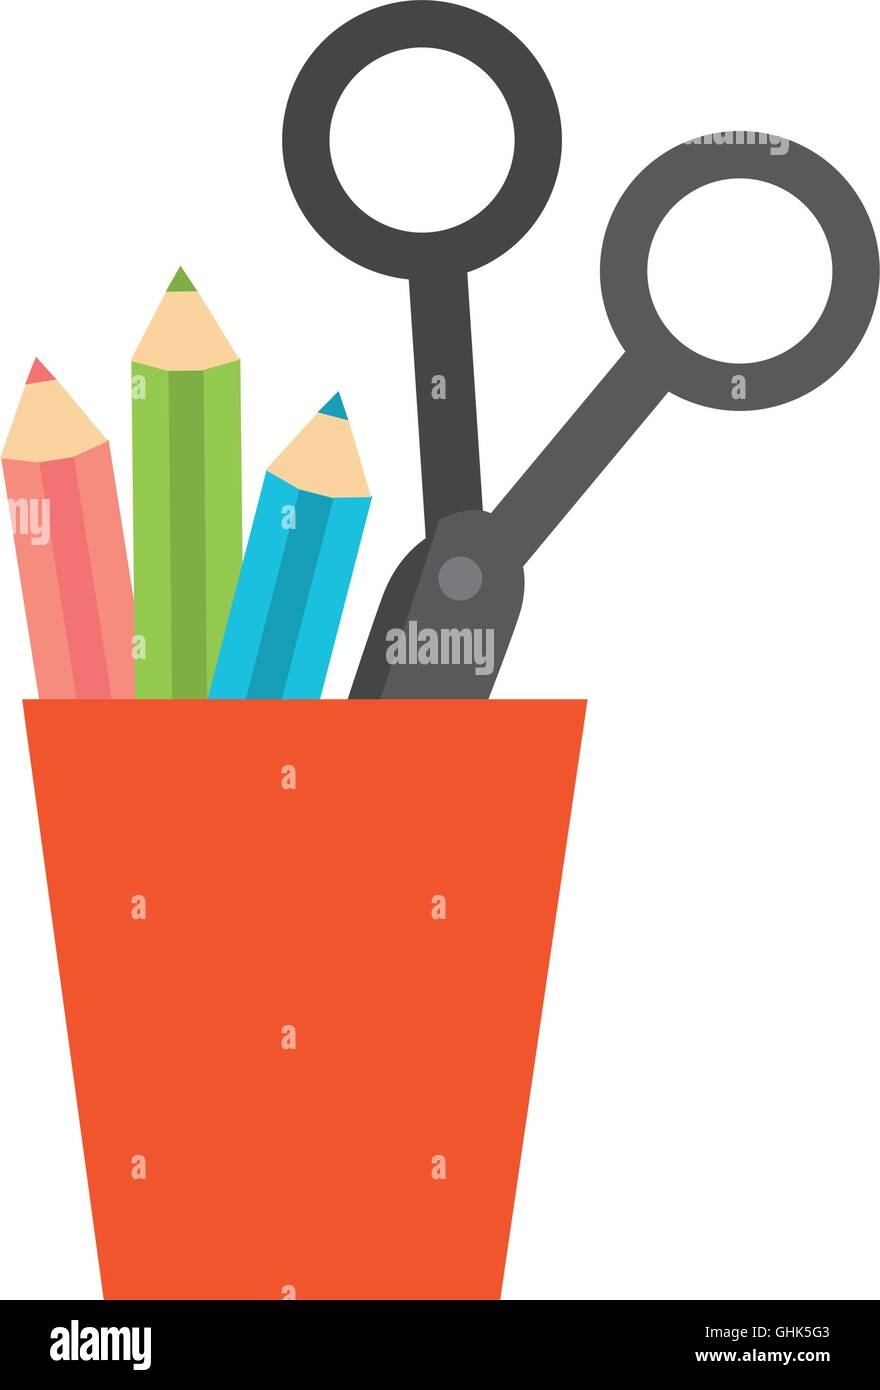 Cup Holder Stationary Office Supplies Icon Vector Graphic